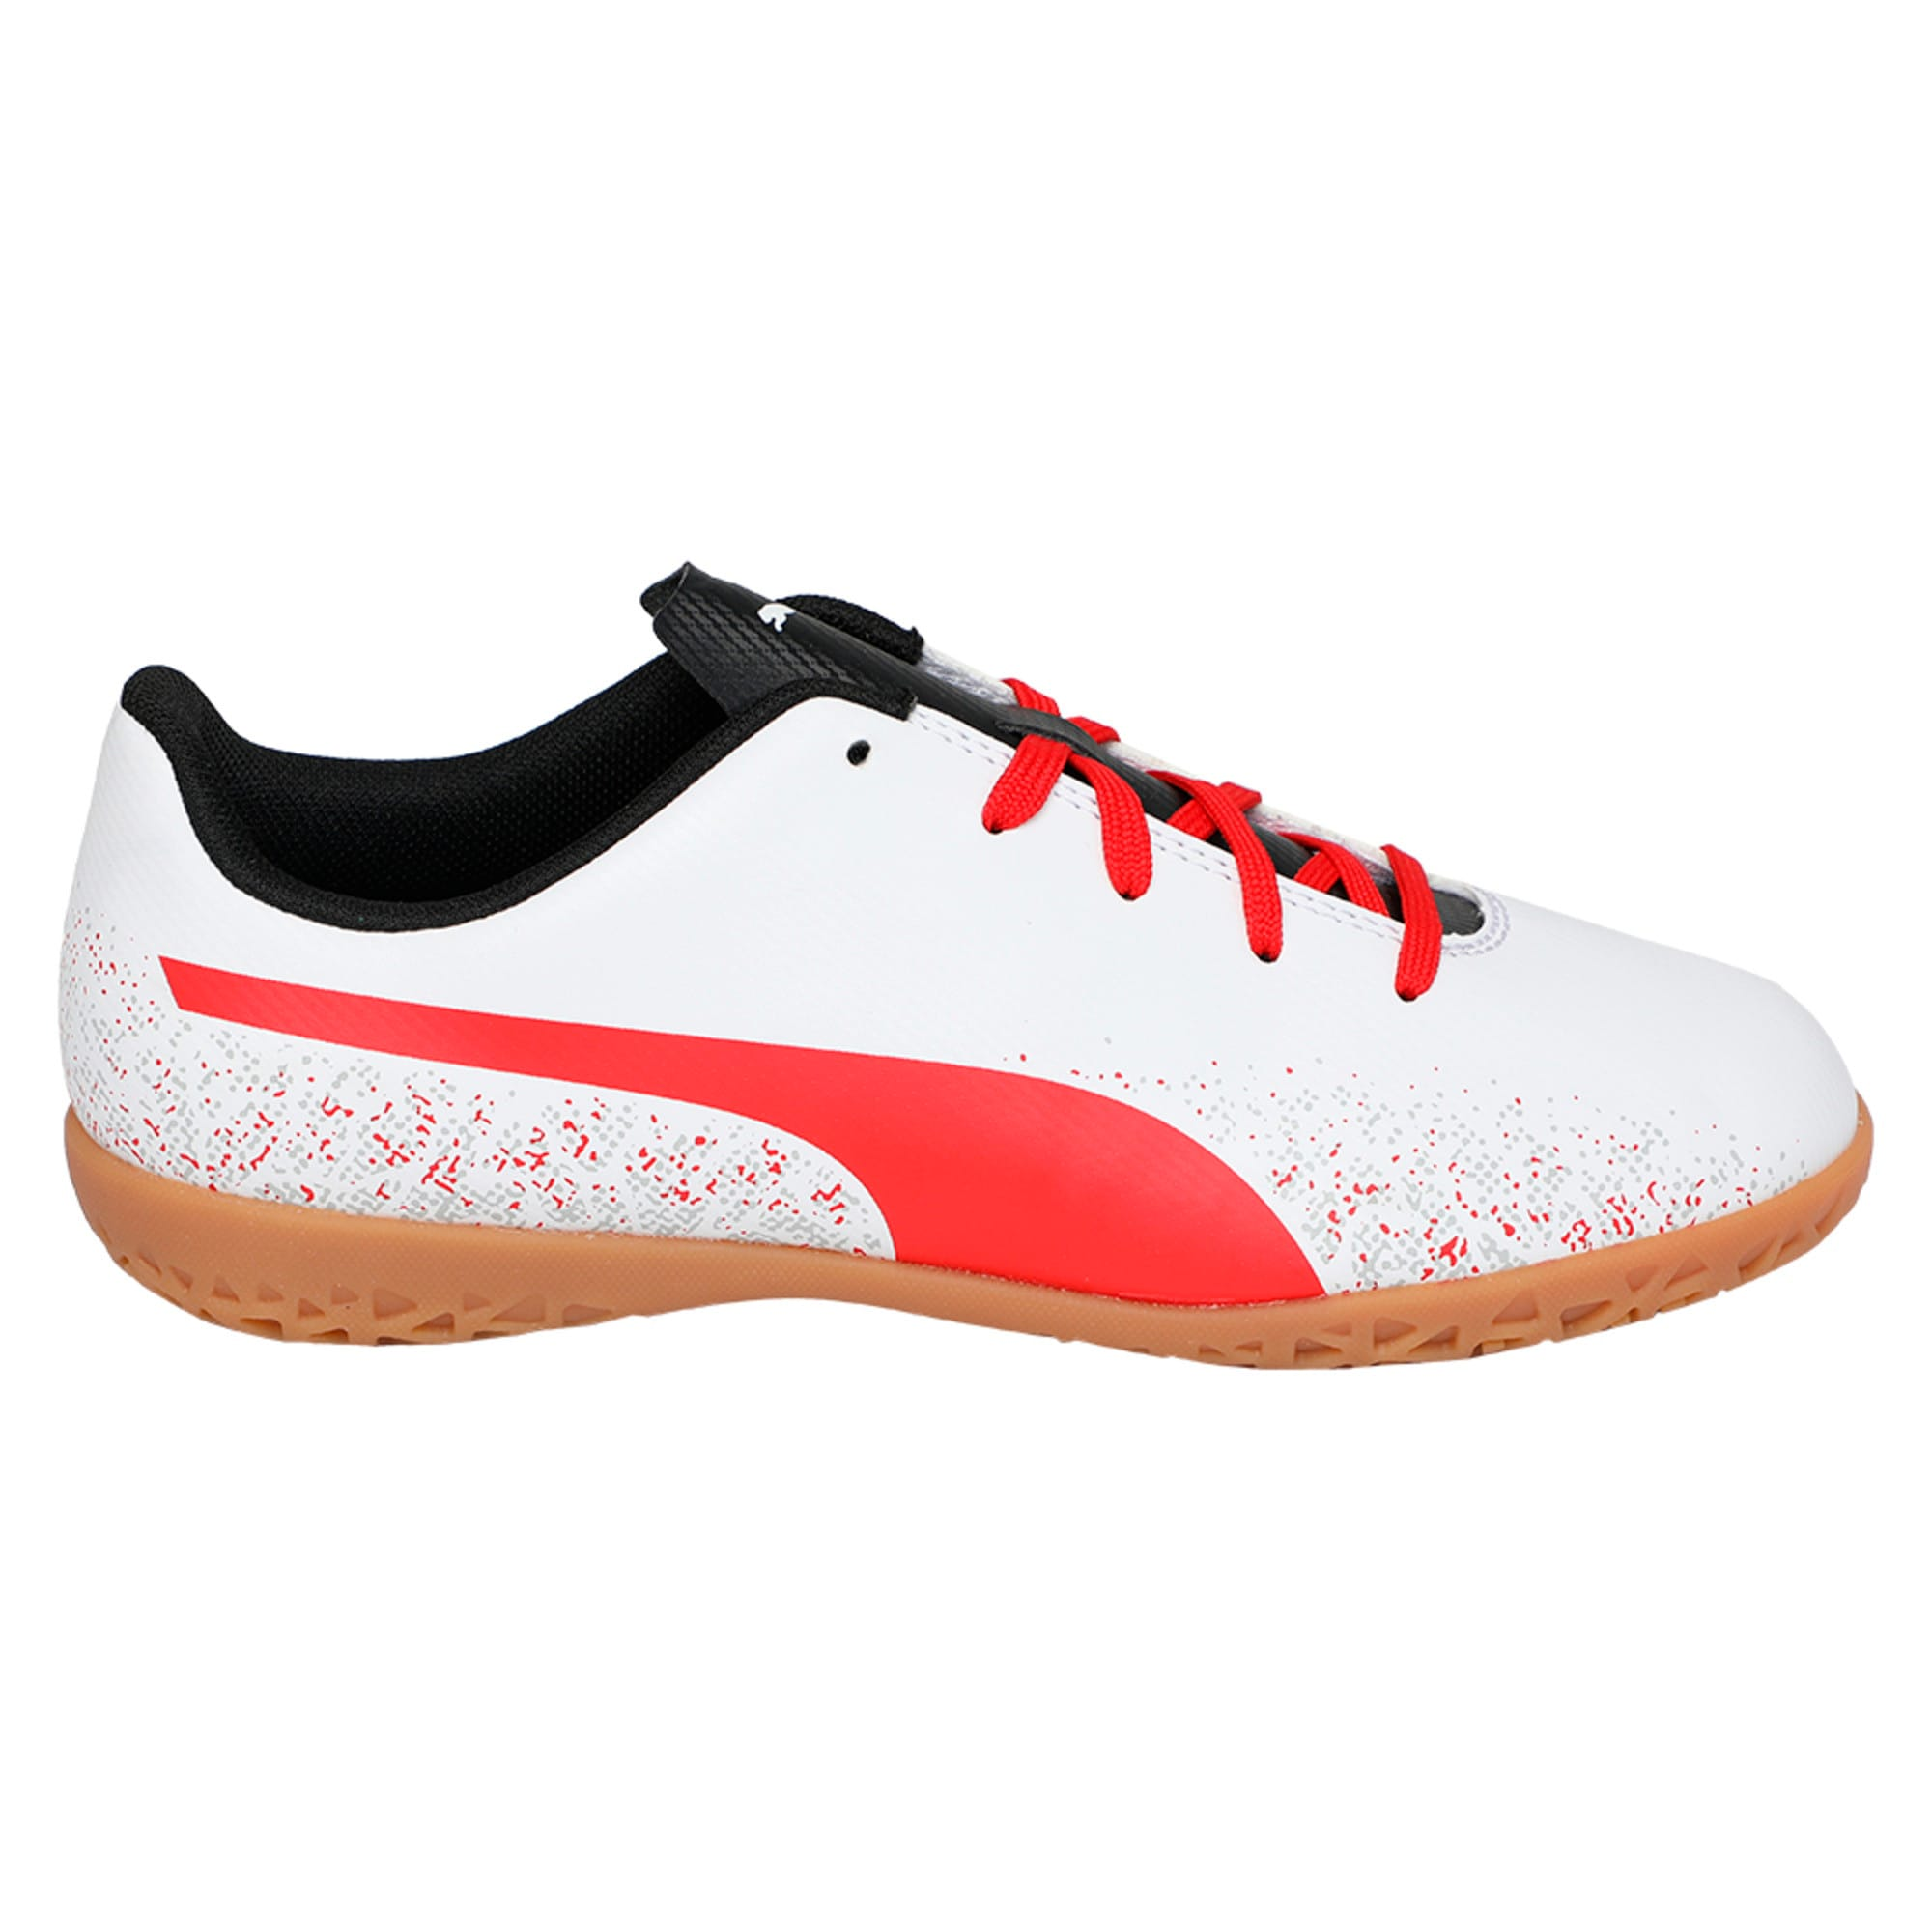 Thumbnail 5 of Truora IT Kids' Indoor Training Shoes, White-Flame Scarlet-Black, medium-IND